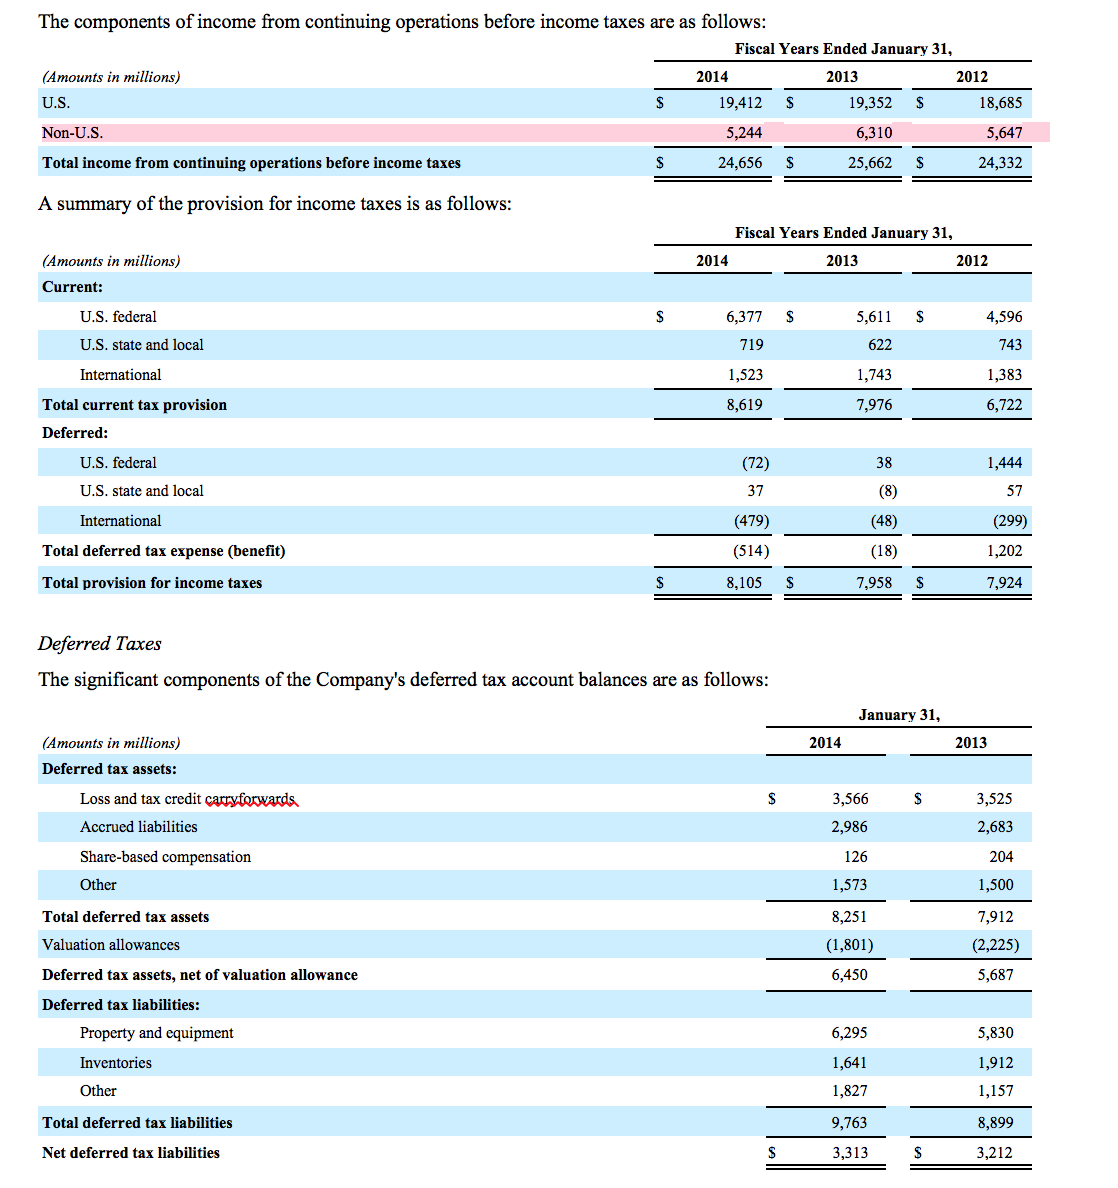 financial analysis of wal mart The financial analysis of a company like walmart inc involves checking the three financial statements of the company in detail, of which the balance sheet is one.